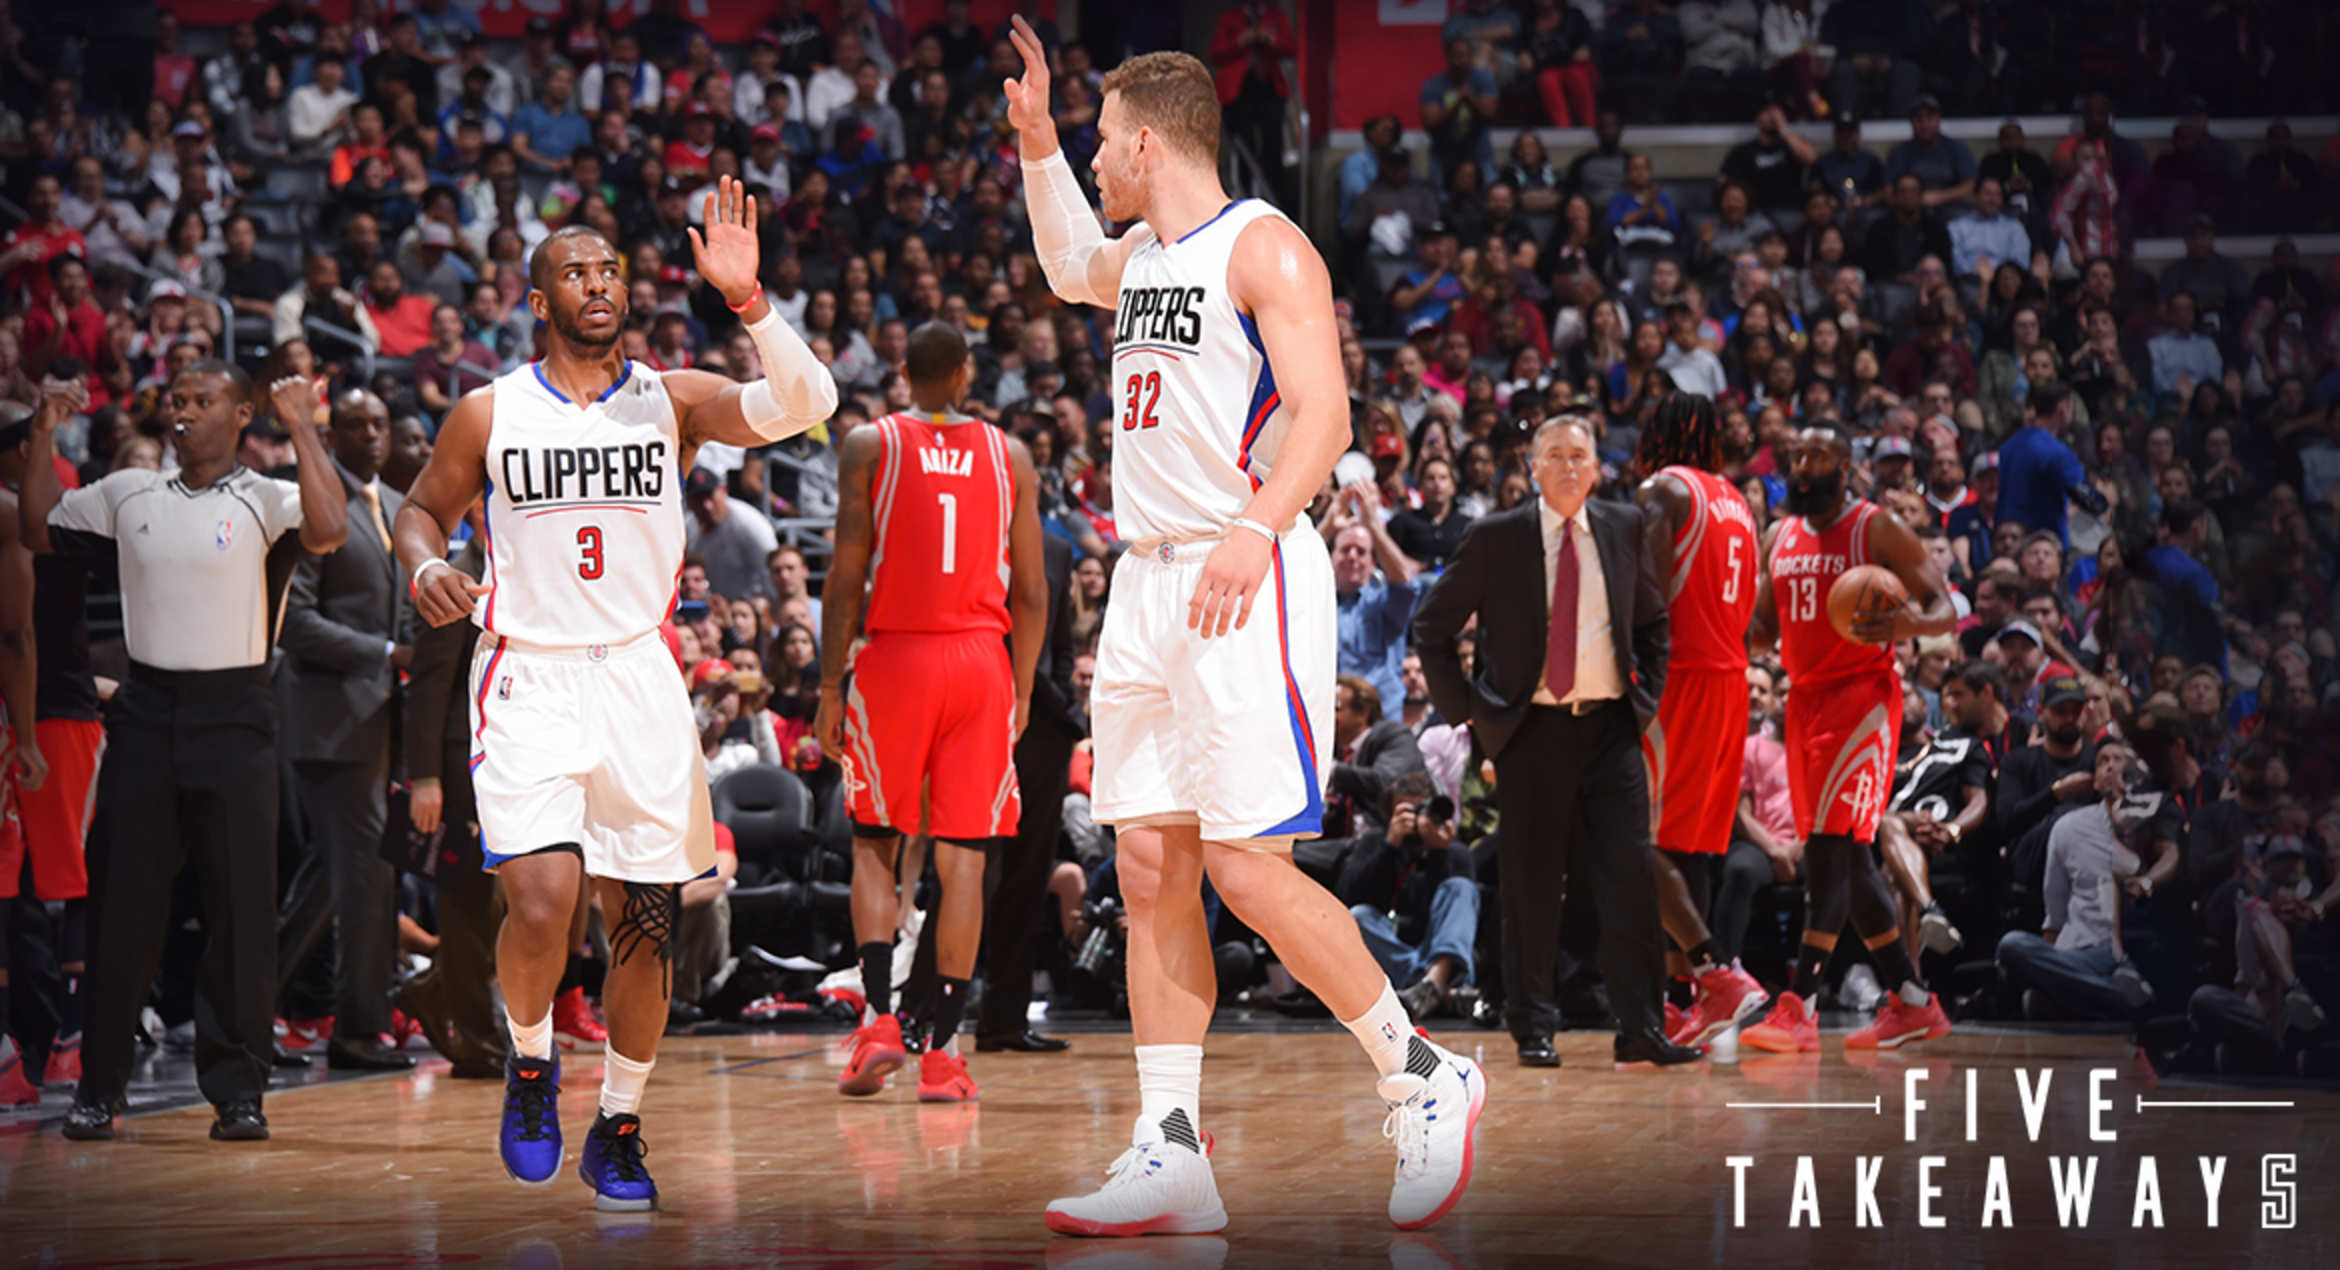 Five Takeaways: Clippers Hammer Rockets, But Remain Tied With Jazz For Fourth Seed